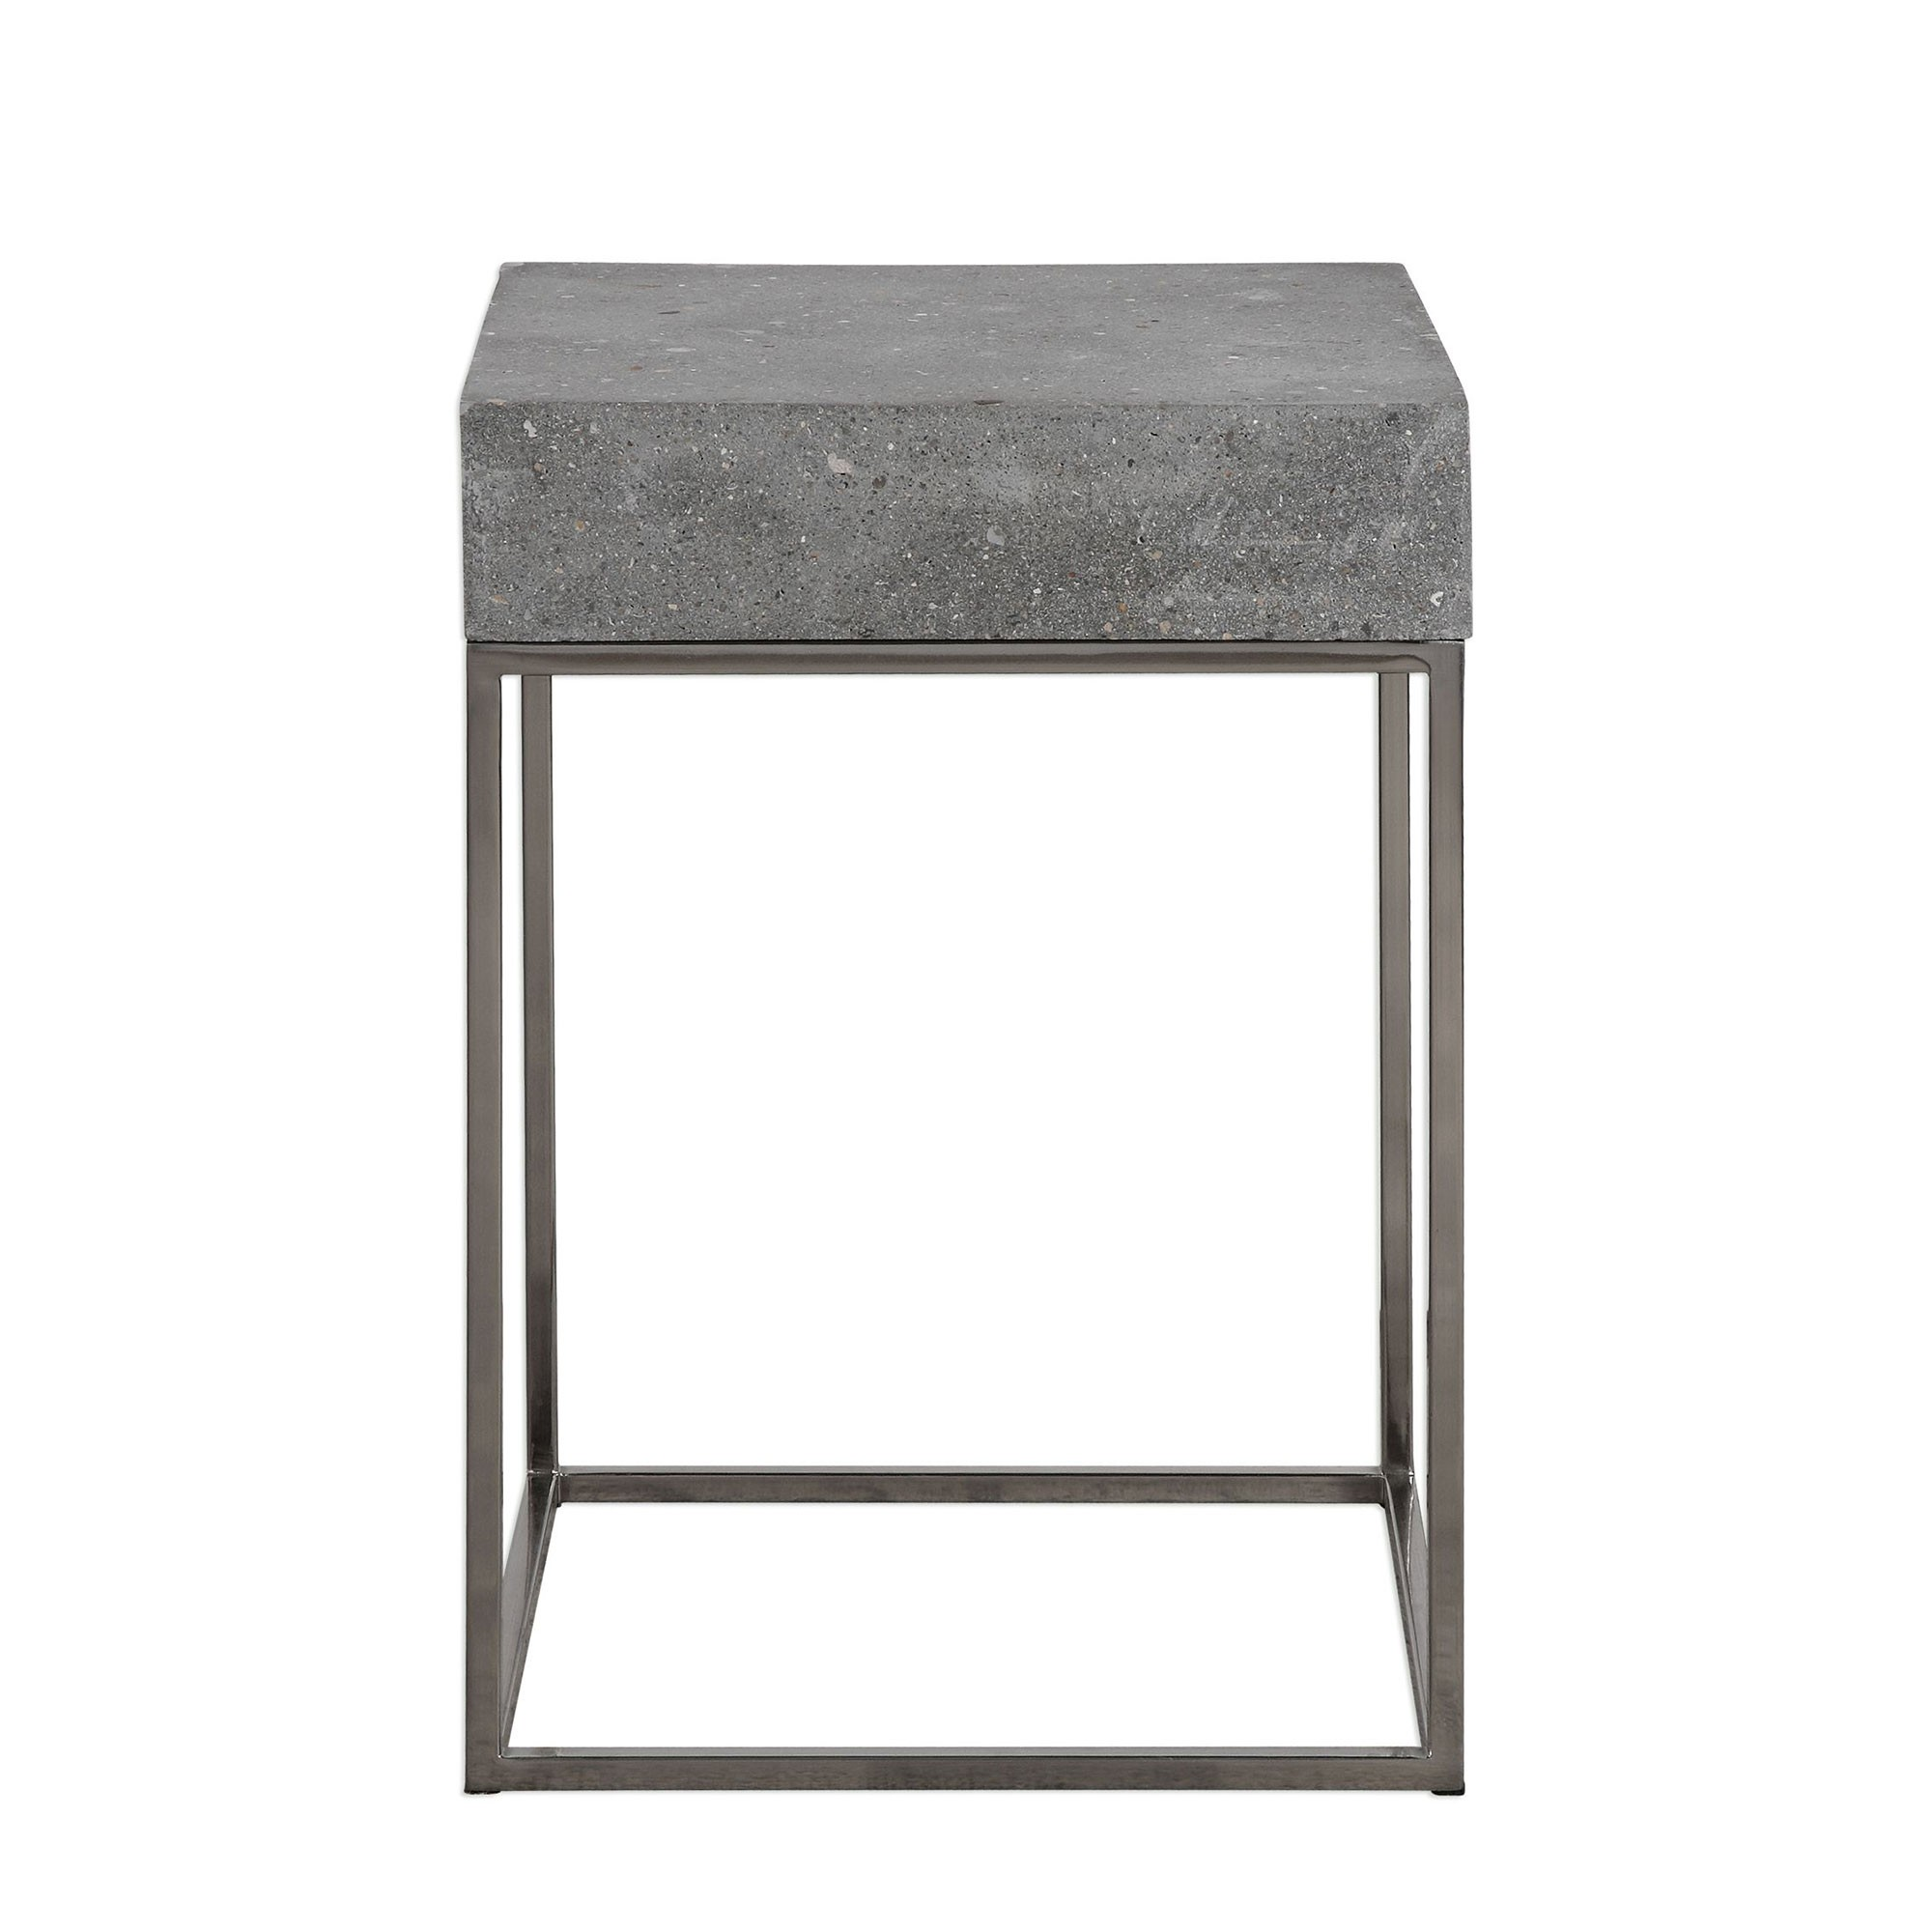 jude concrete accent table industrial steel uttermost outdoor ikea dining room chairs west elm wood chair small metal outside tables patio umbrella lights soccer game mid century